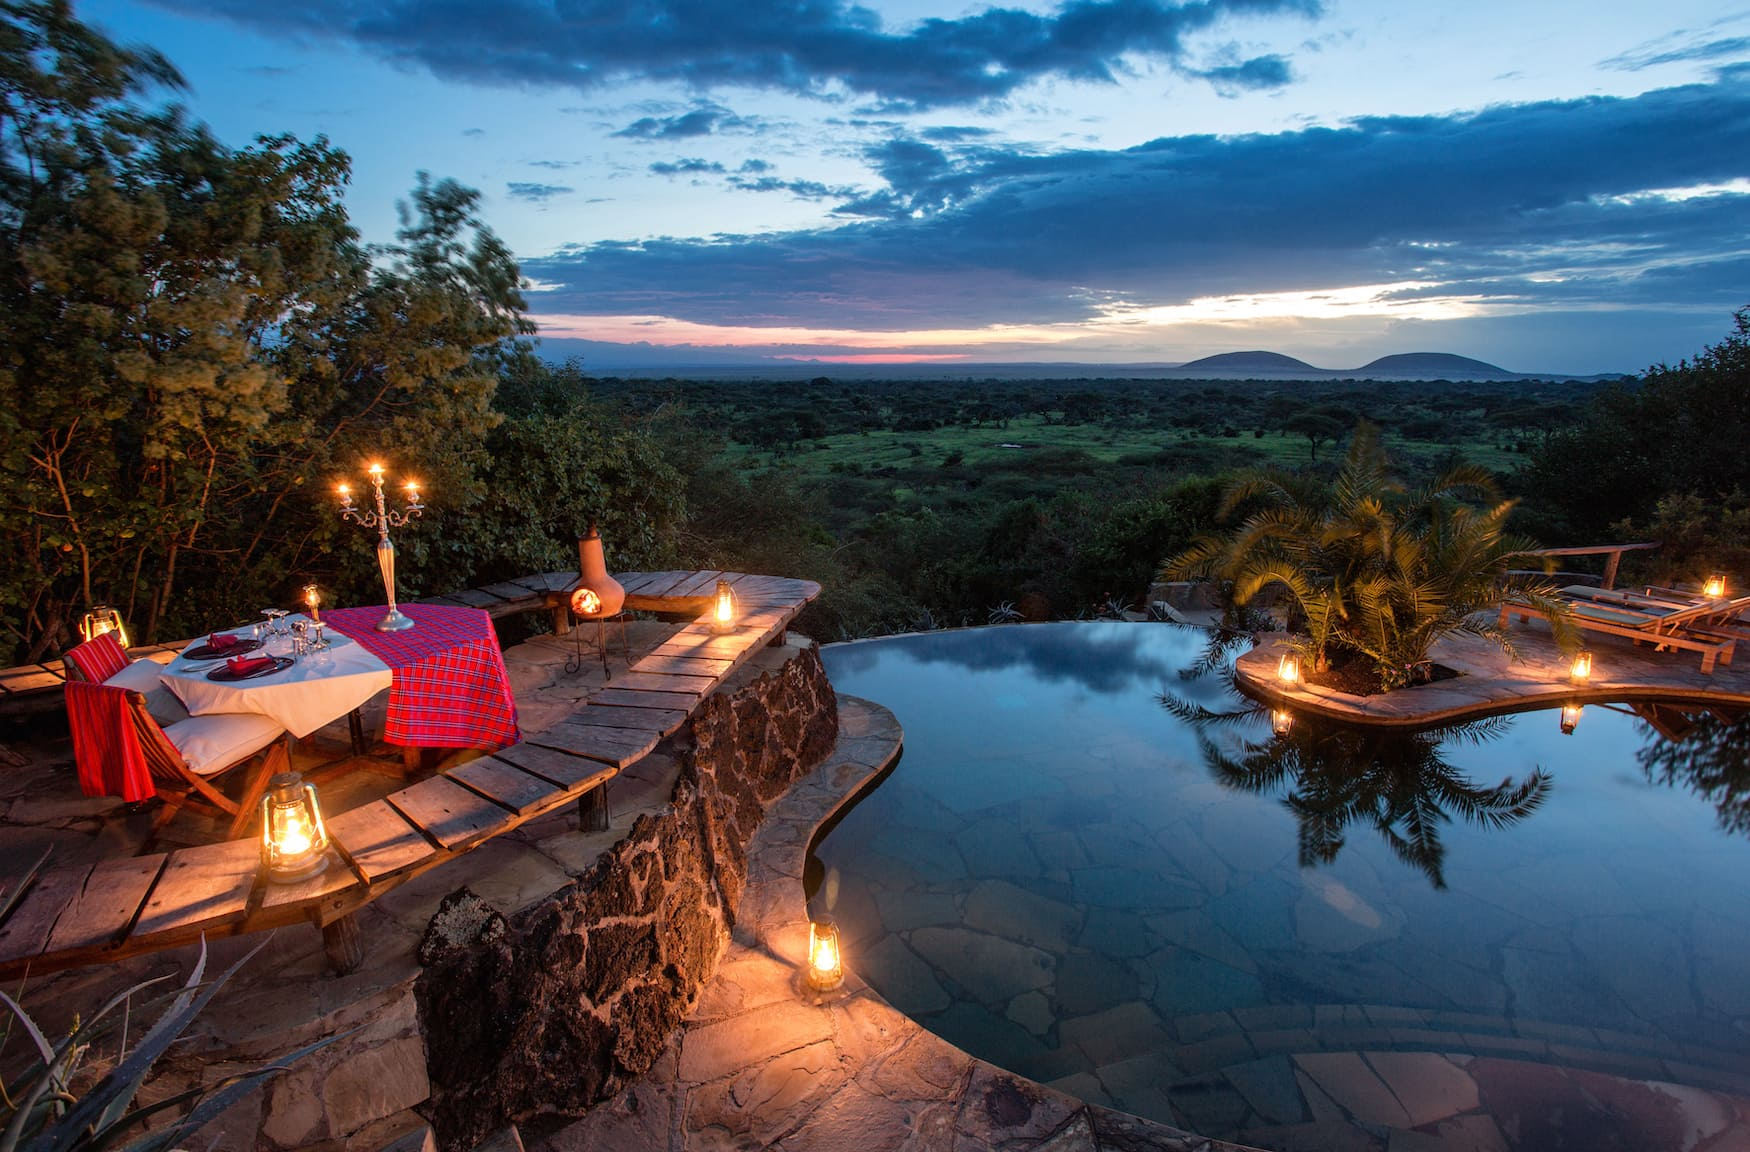 Romantische Dinner Location am Pool der Ol Donyo Lodge in Kenia